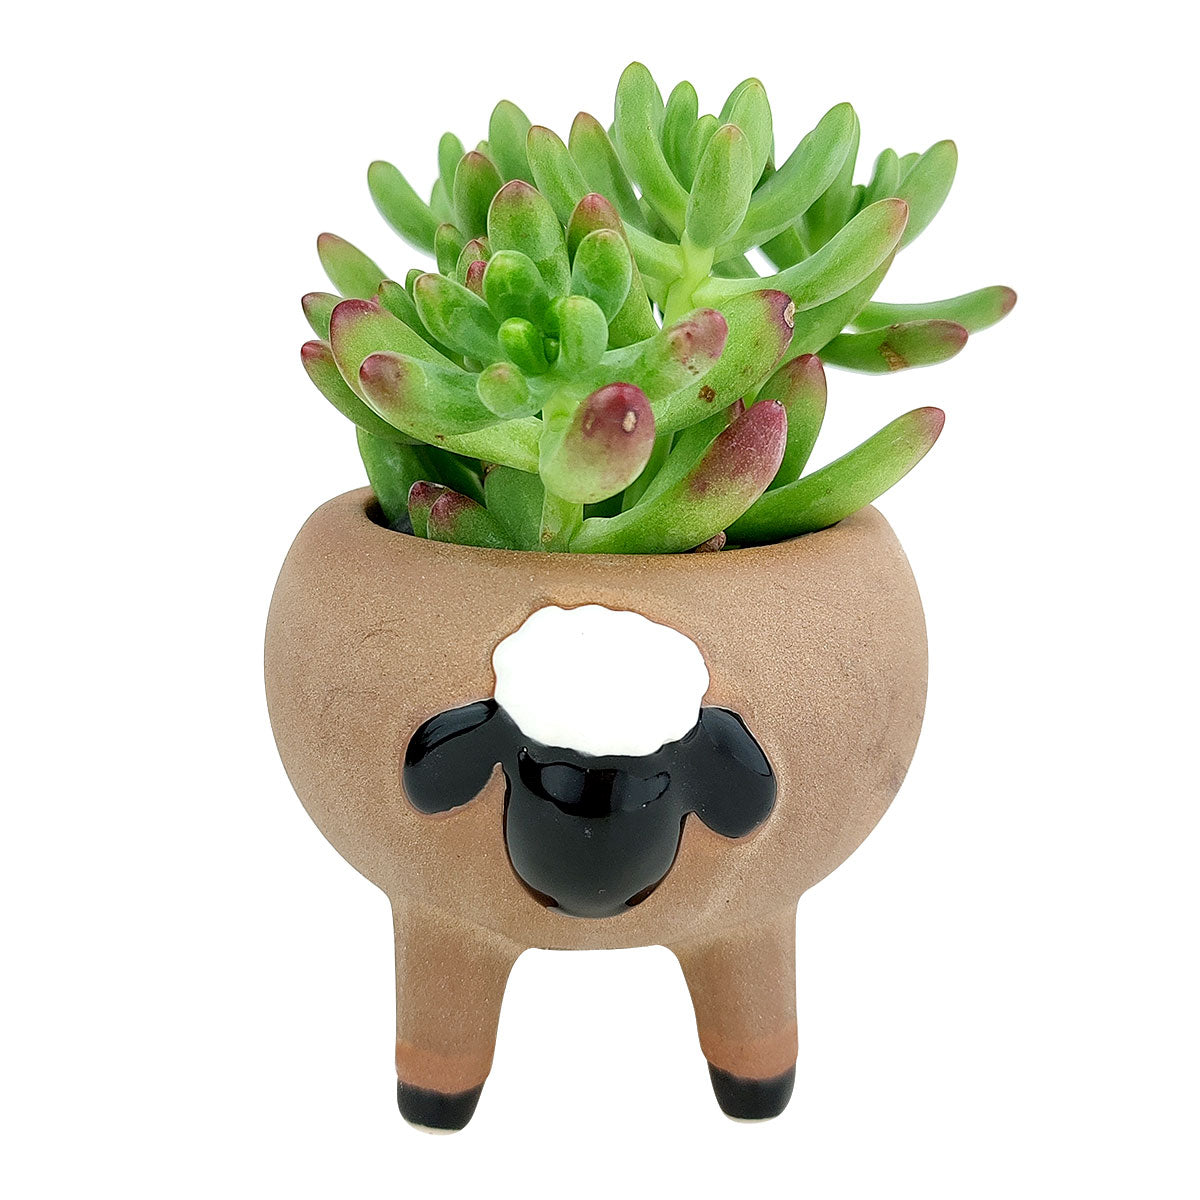 Cute Sheep Animals Ceramic Planter Pots for Succulent and Flowers, Ceramic Pot, Animal Pot, Mini ceramic pot for sale, Succulent pot for sale, Succulent gift decor ideas